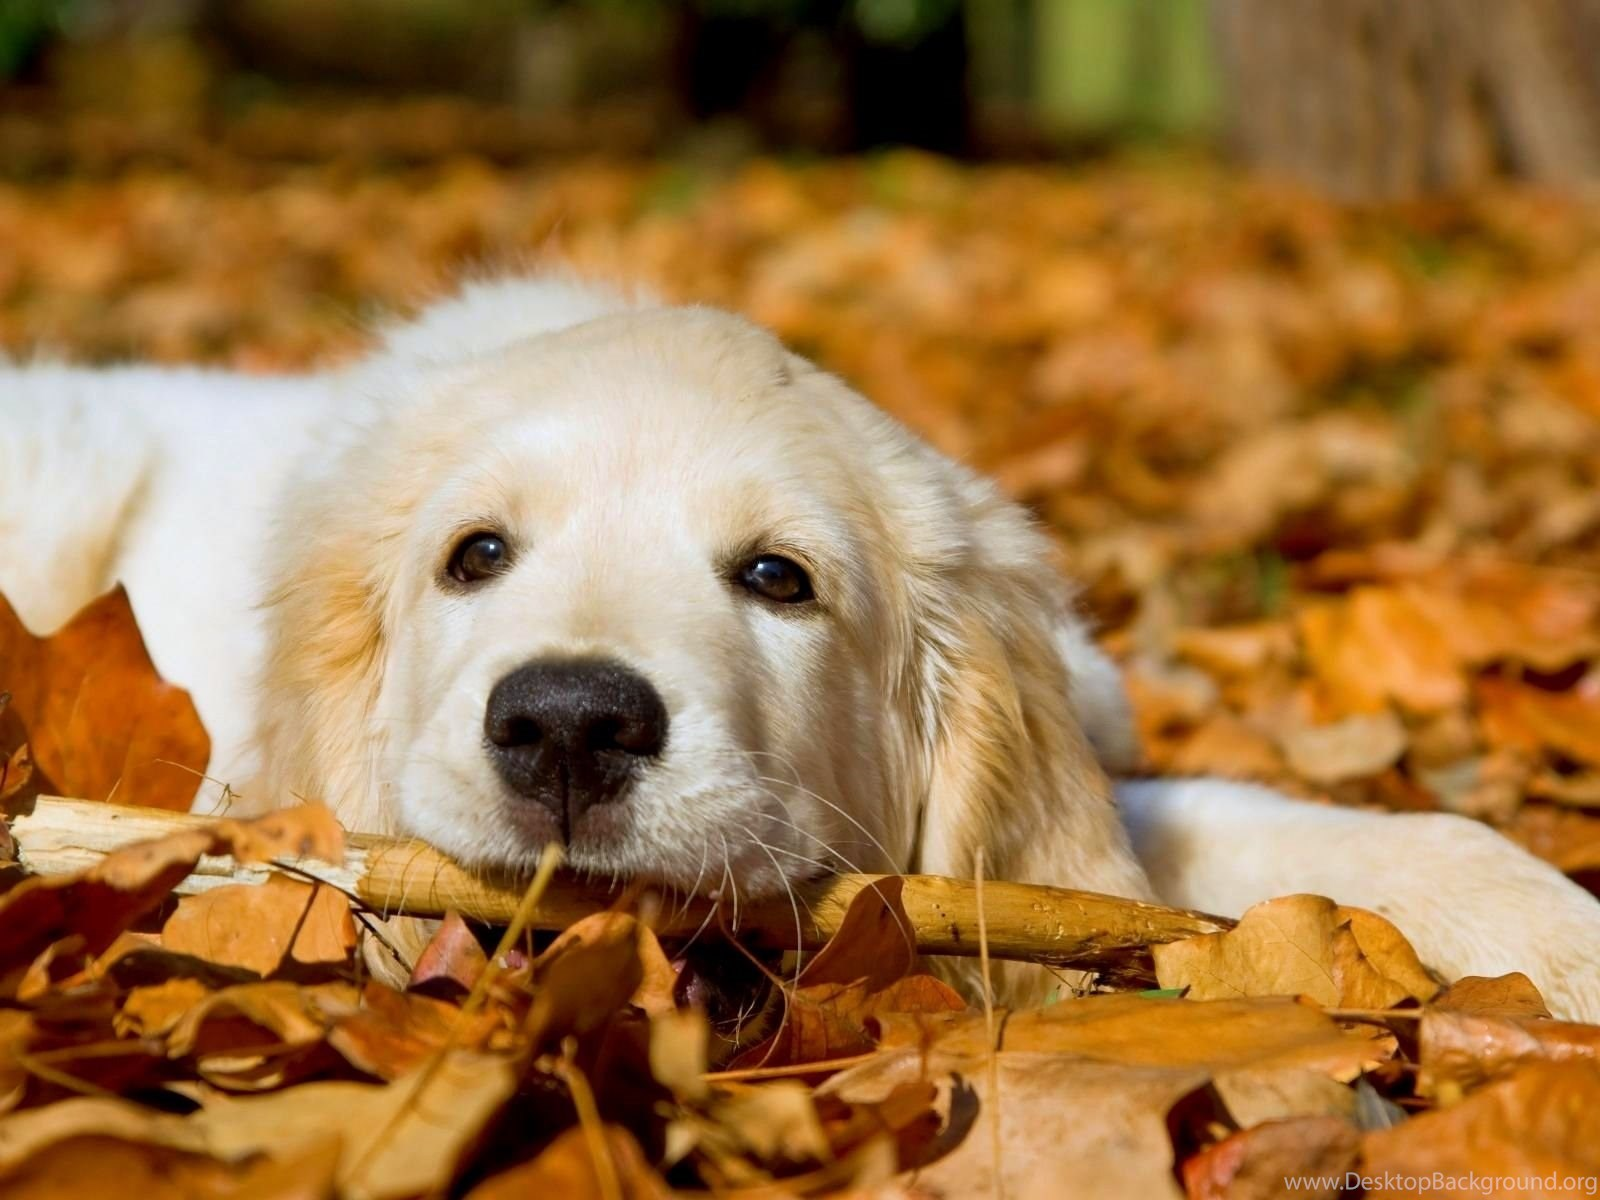 Cute Dog Hd Wallpaper Cute Dog Images New Wallpapers